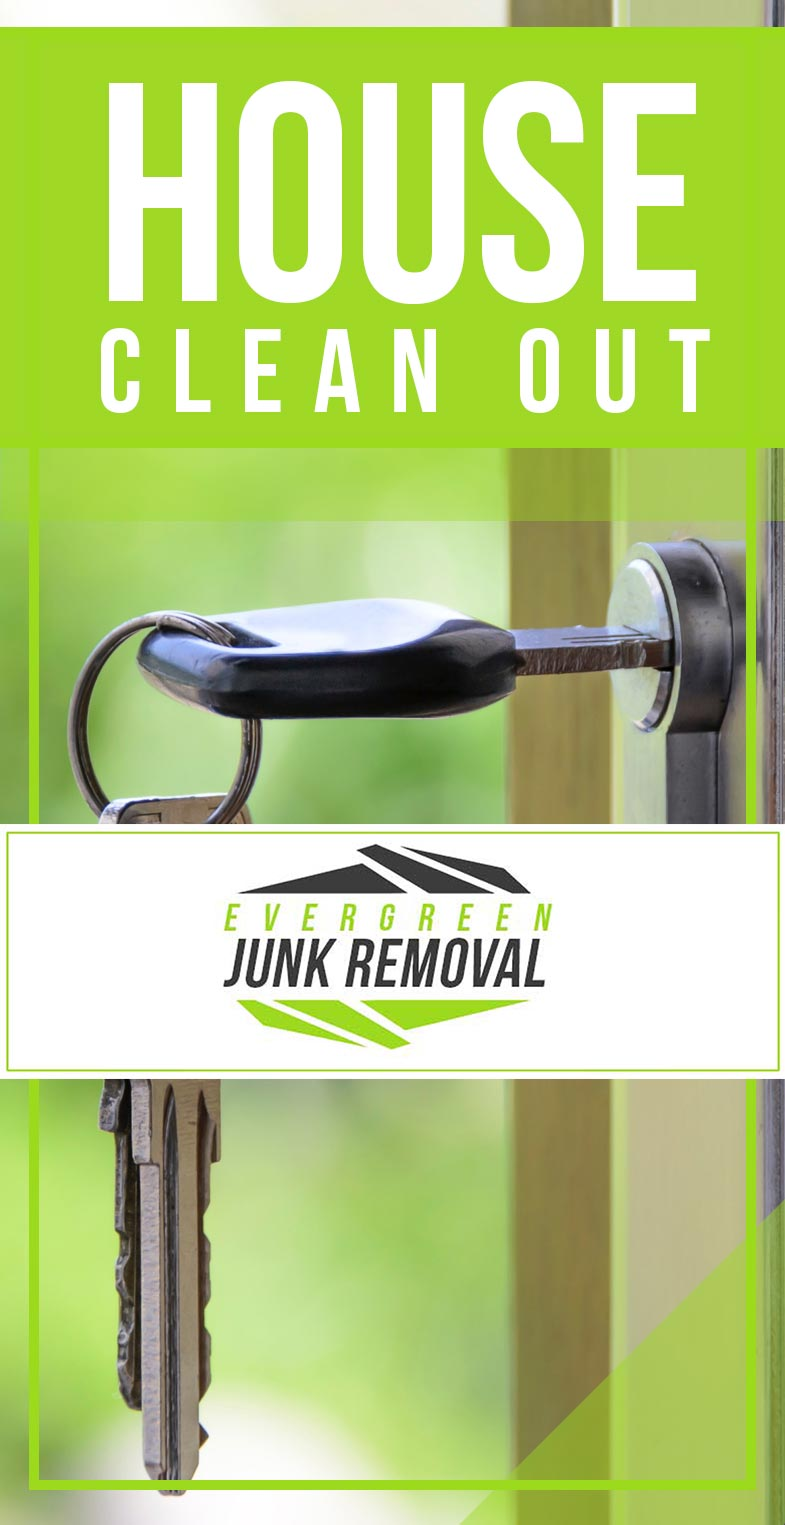 Junk Removal Boynton Beach House Clean Out